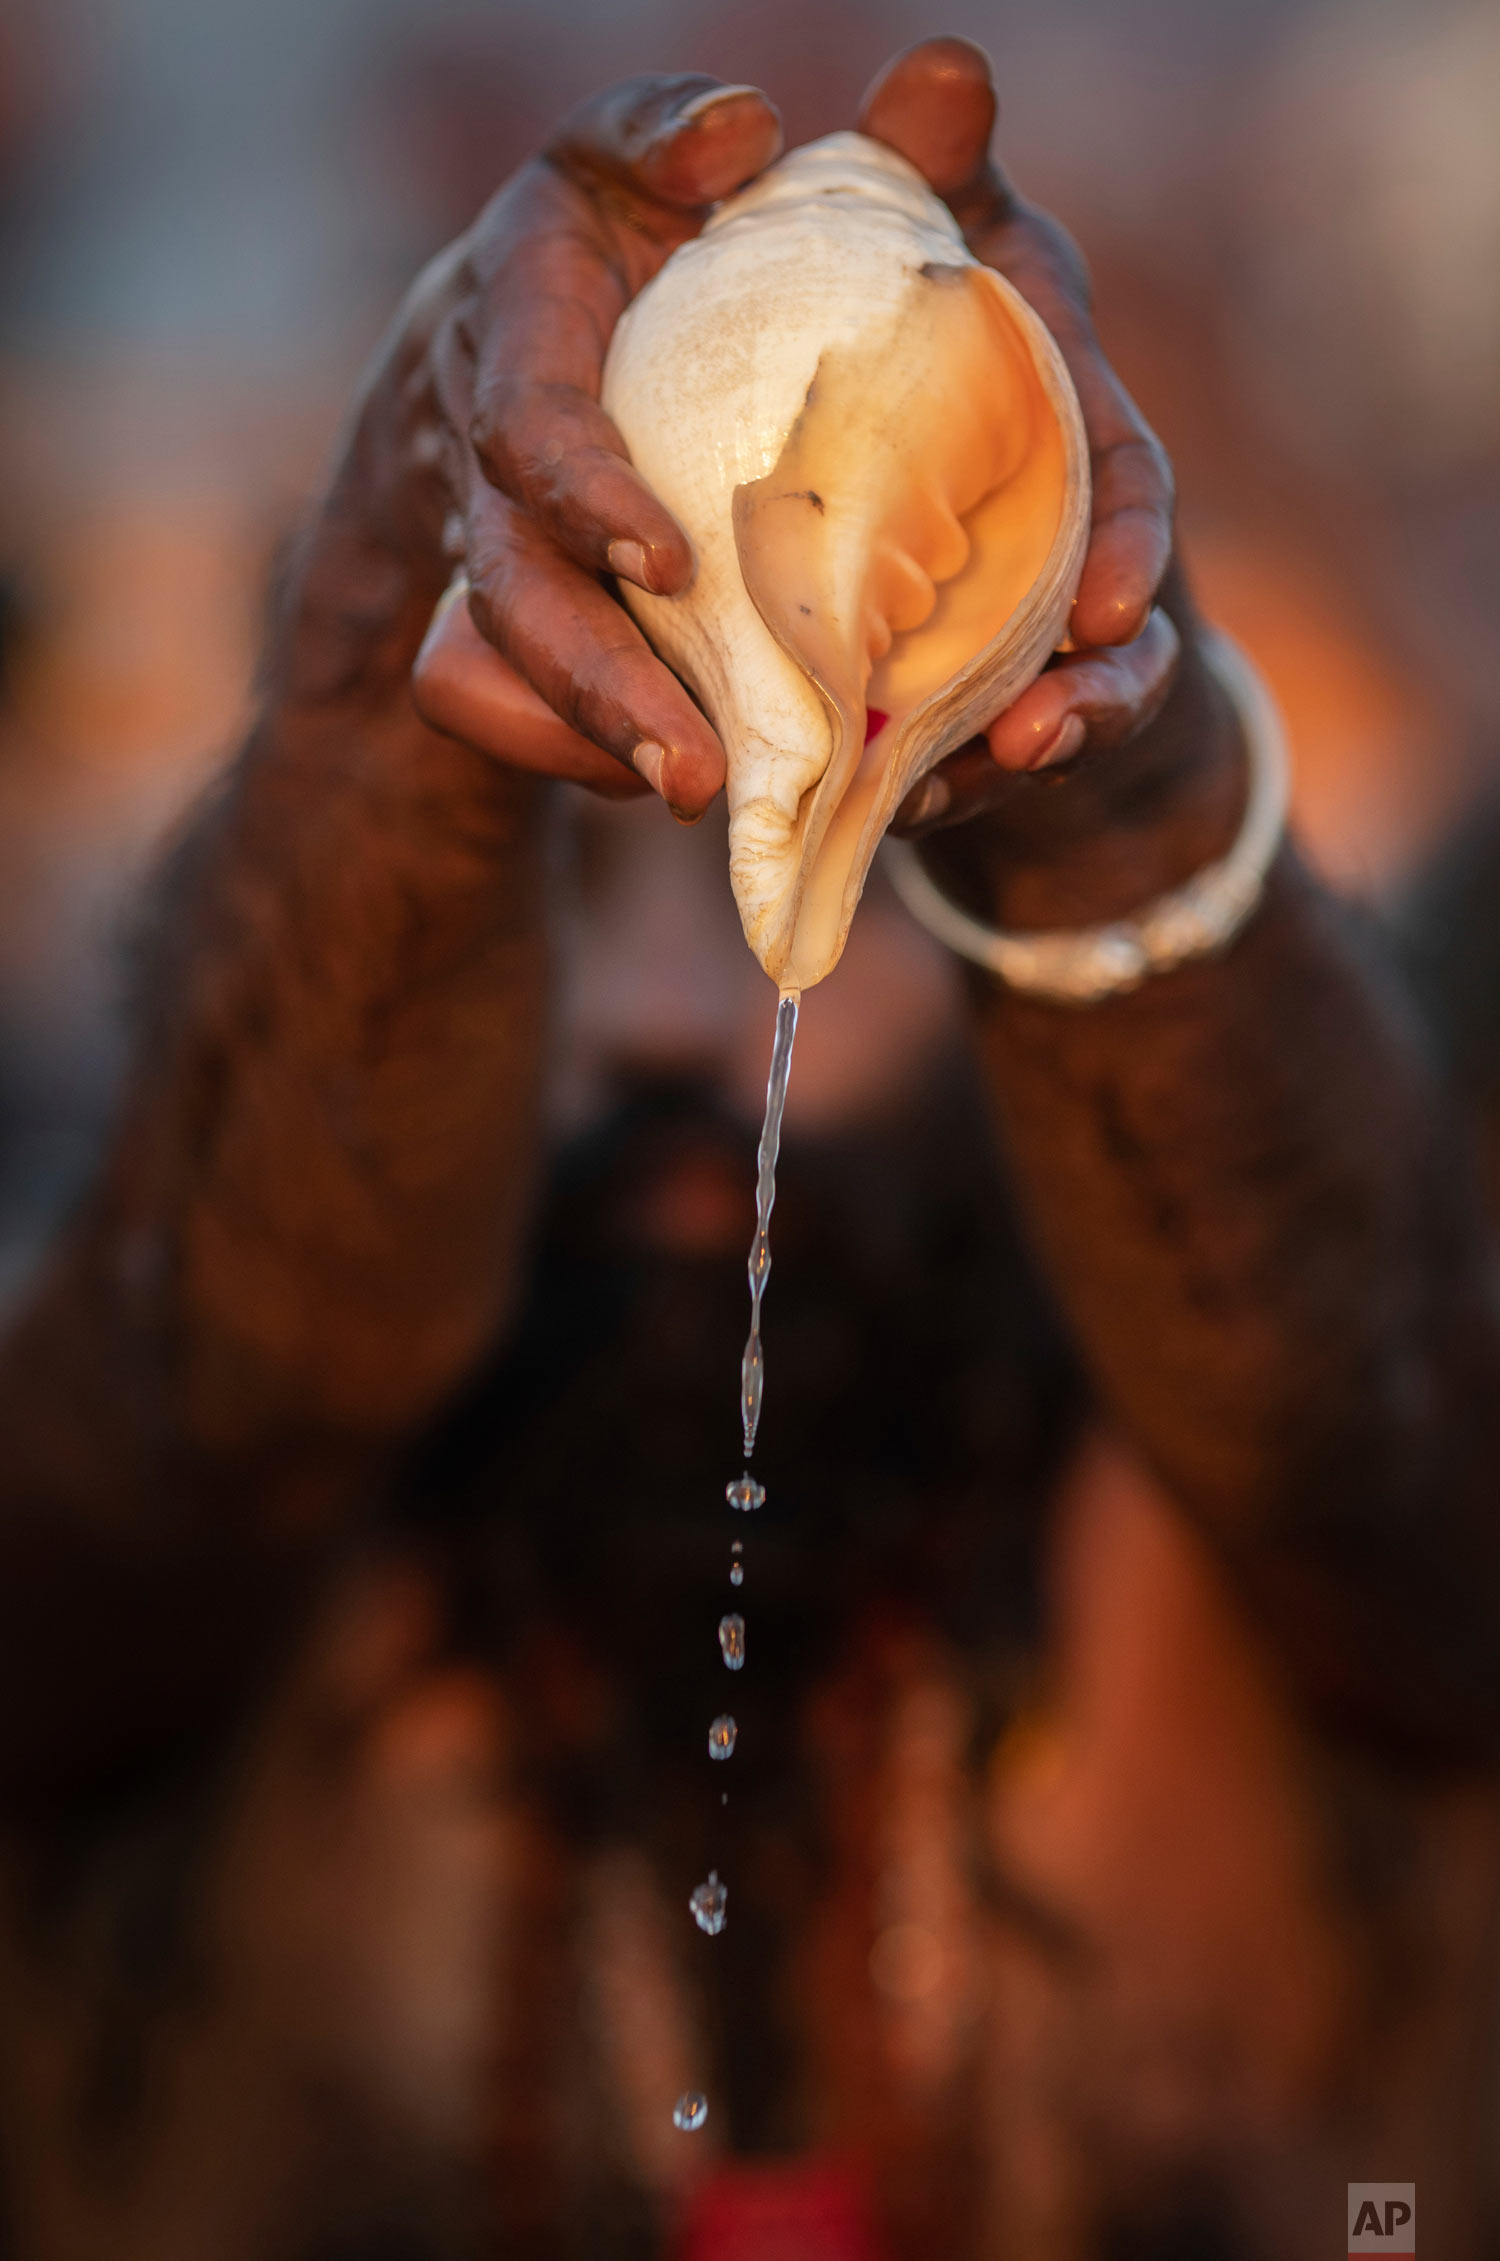 A sadhu, a Hindu holy man, pours water from a shell as he takes a ceremonial cleansing dip at Sangam, during the Kumbh Mela festival in Prayagraj, India on Jan. 15, 2019. (AP Photo/Bernat Armangue)